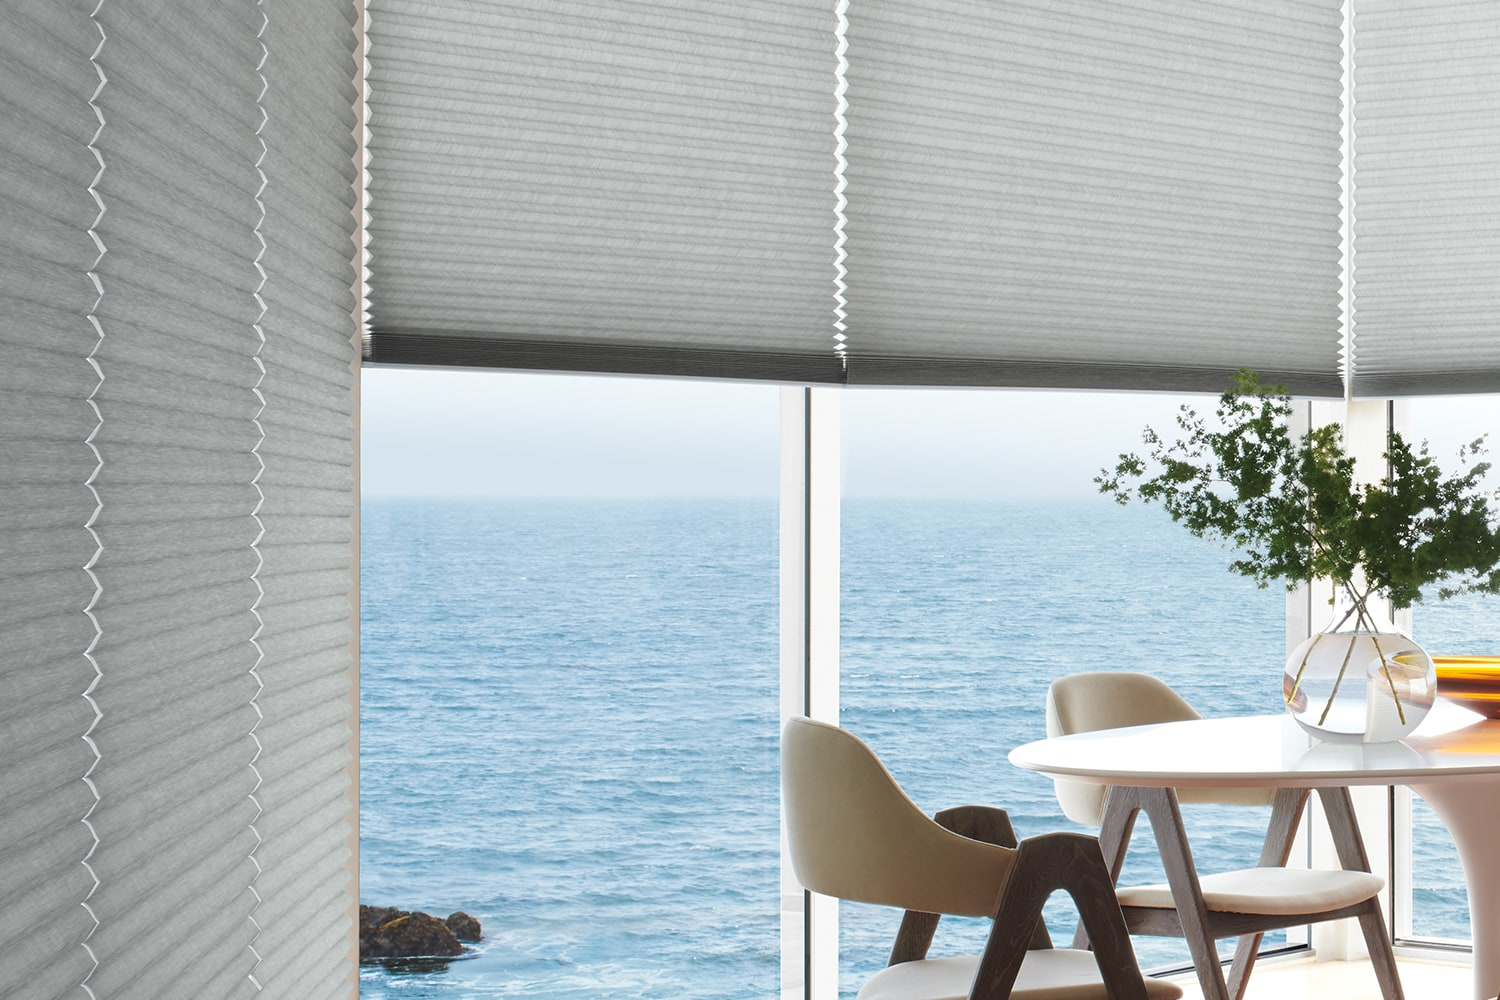 Ocean view out window with Duette Honeycomb Shades.